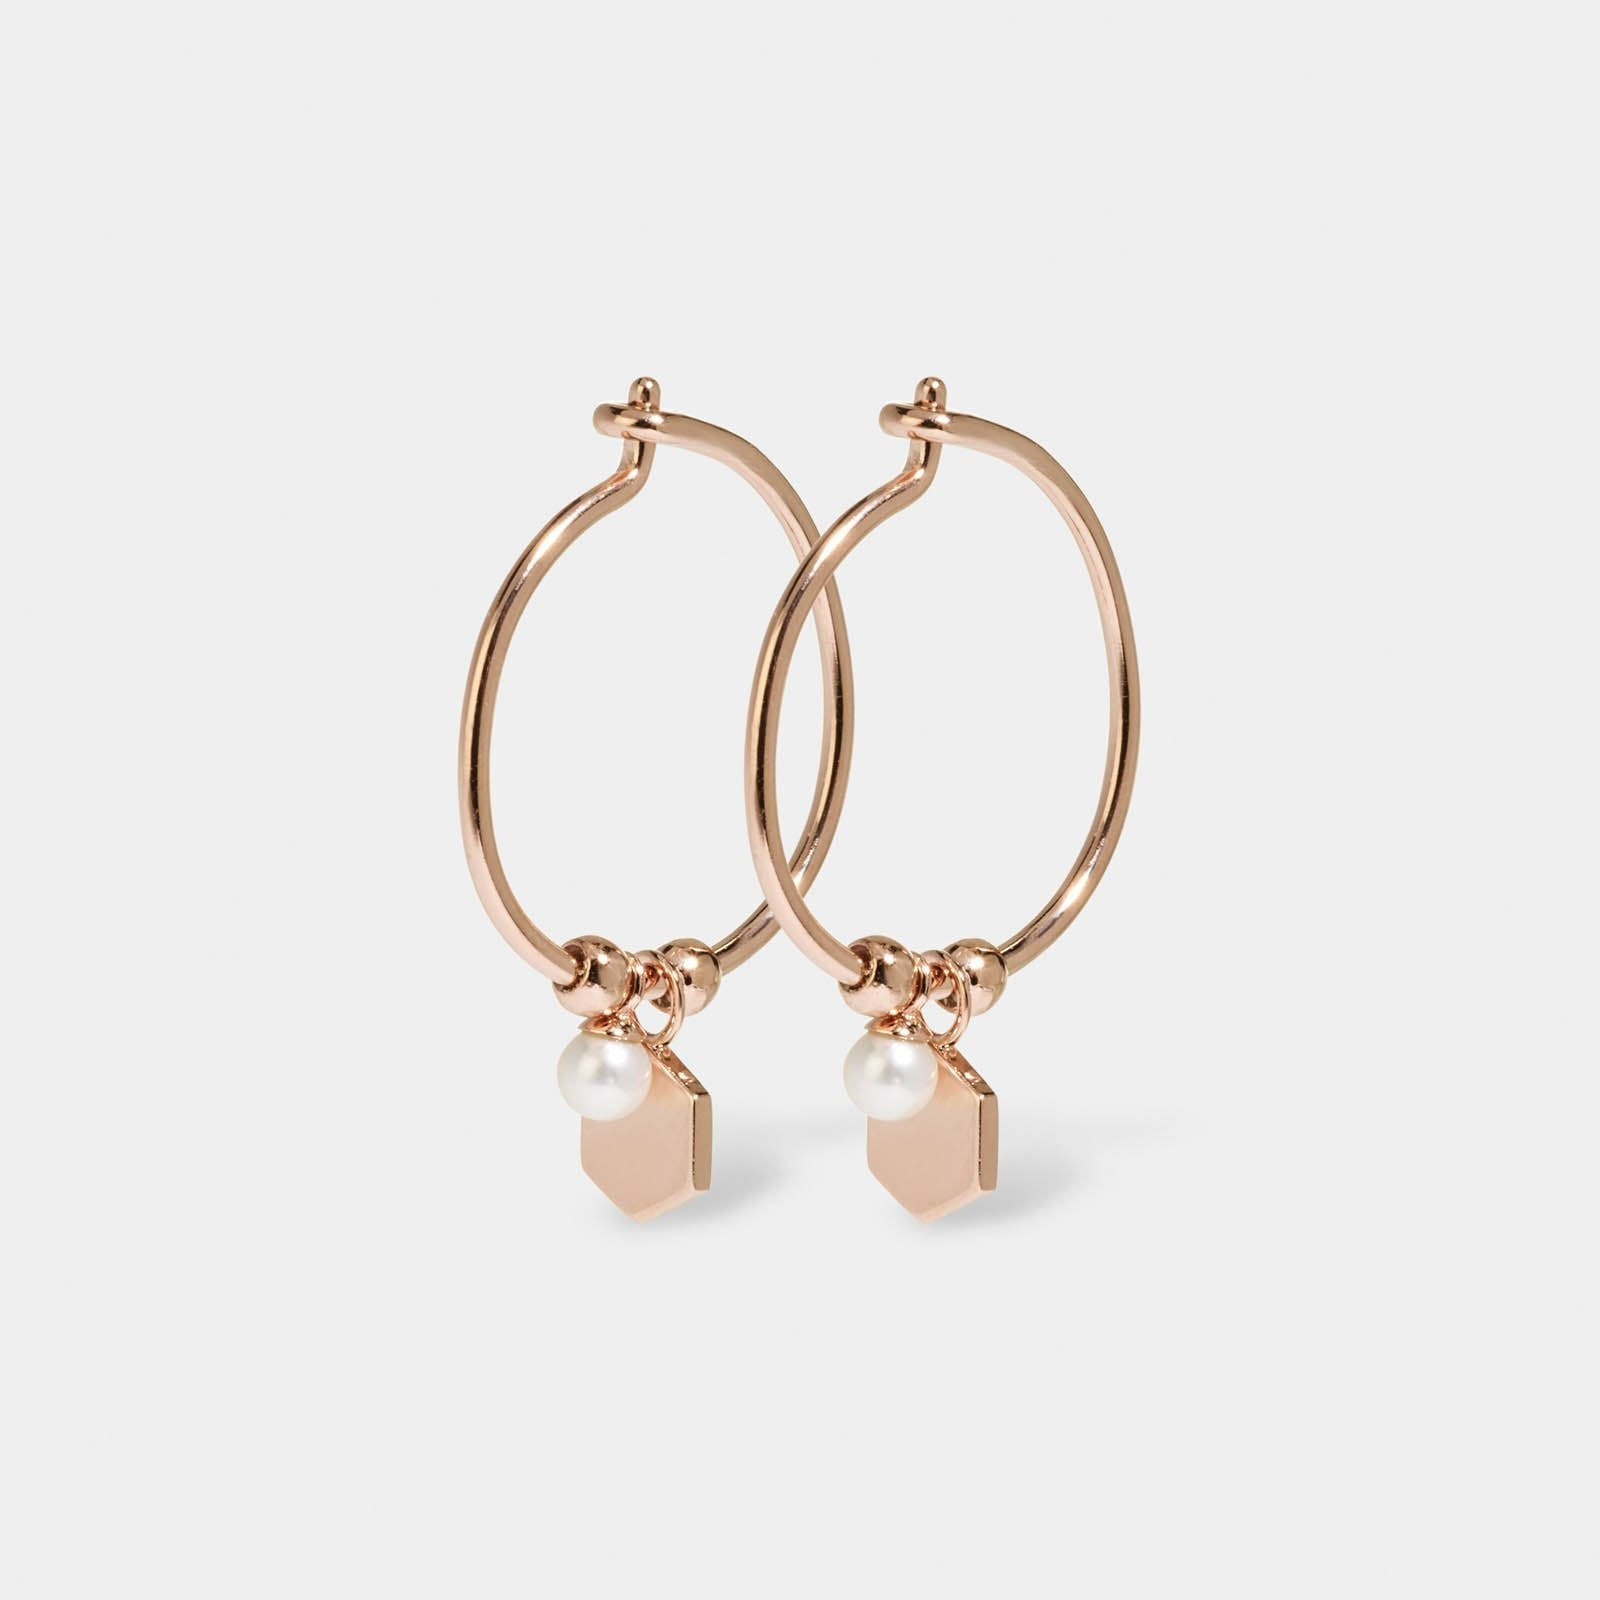 CLUSE Essentielle Rose Gold Hexagon and Pearl Charm Hoop Earrings CLJ50002 - earrings